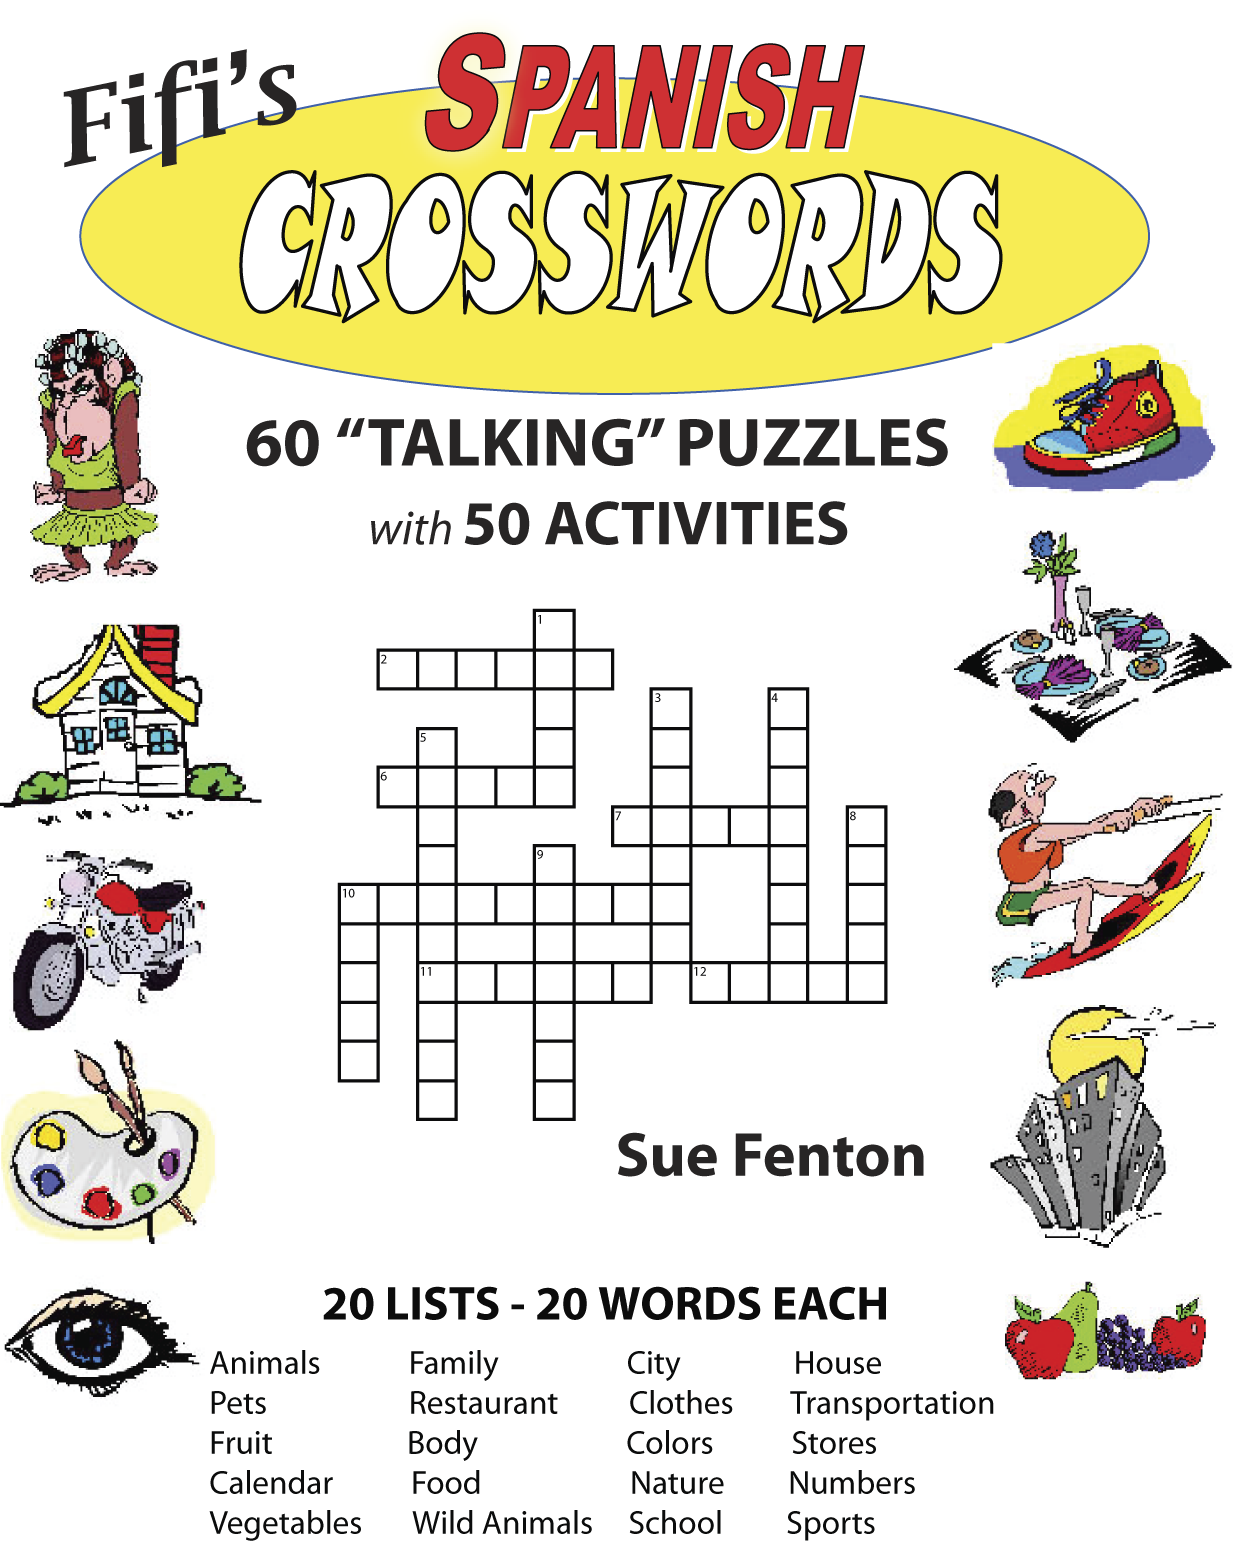 "FIFI'S SPANISH CROSSWORDS ""Talking"" Crosswords"